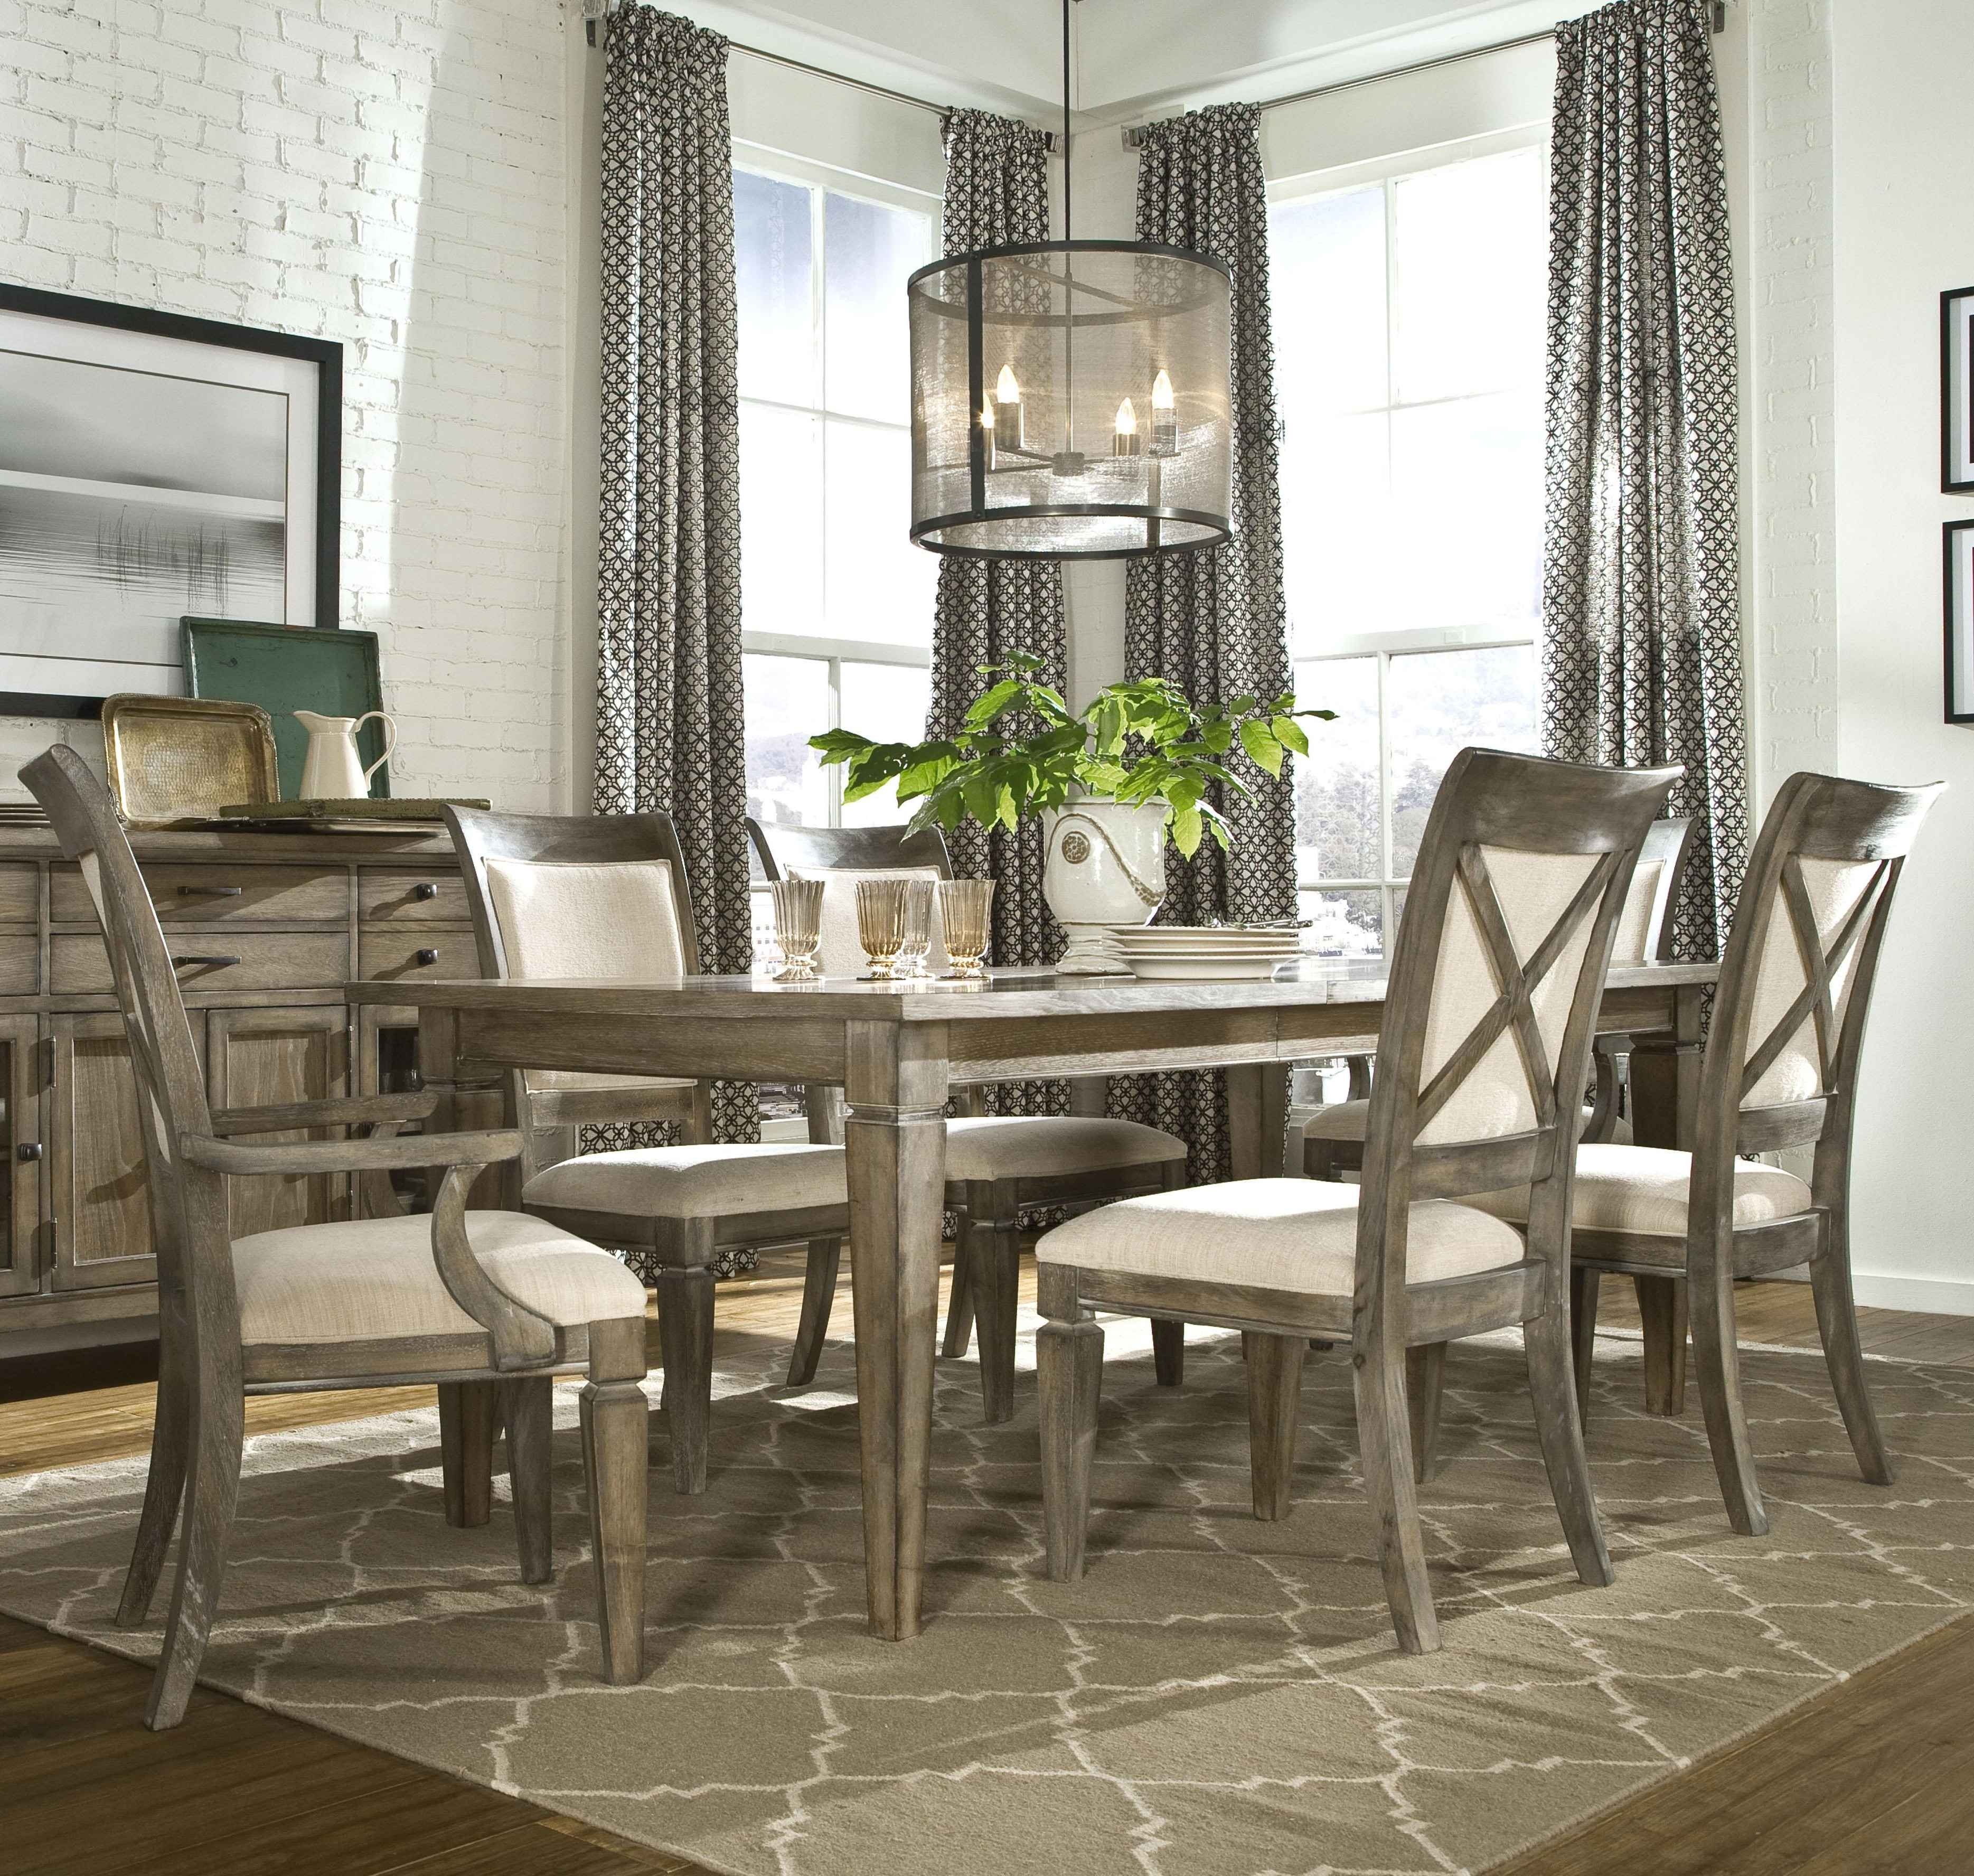 Kitchen Dinette Sets 7 Piece Dining Set Cheap 7 Piece Counter Height For Well Known Jaxon 7 Piece Rectangle Dining Sets With Wood Chairs (Gallery 22 of 25)